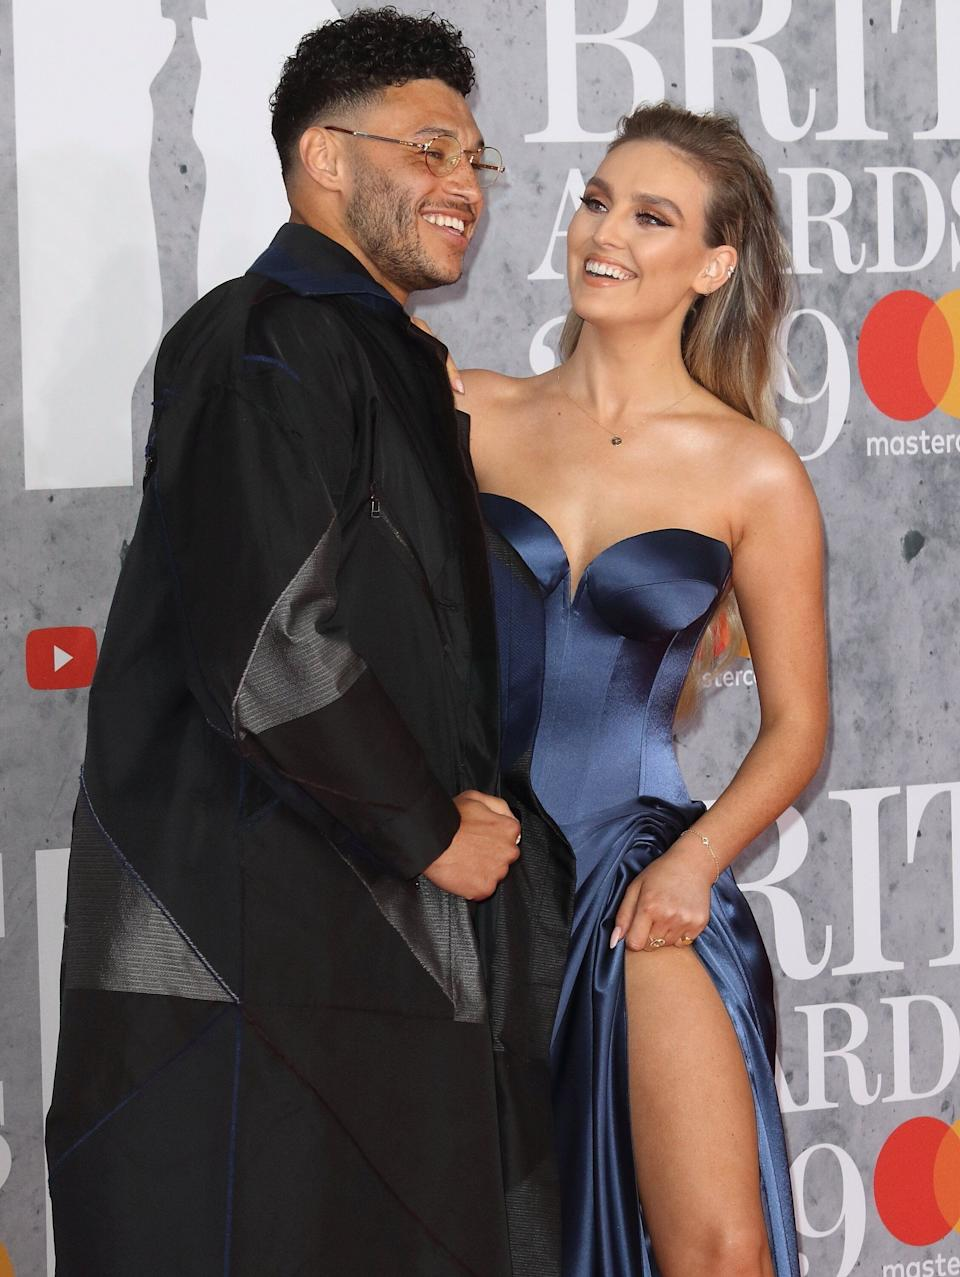 Alex Oxlade-Chamberlain and Perrie Edwards at the Brit Awards in 2019 (Photo: SOPA Images via Getty Images)